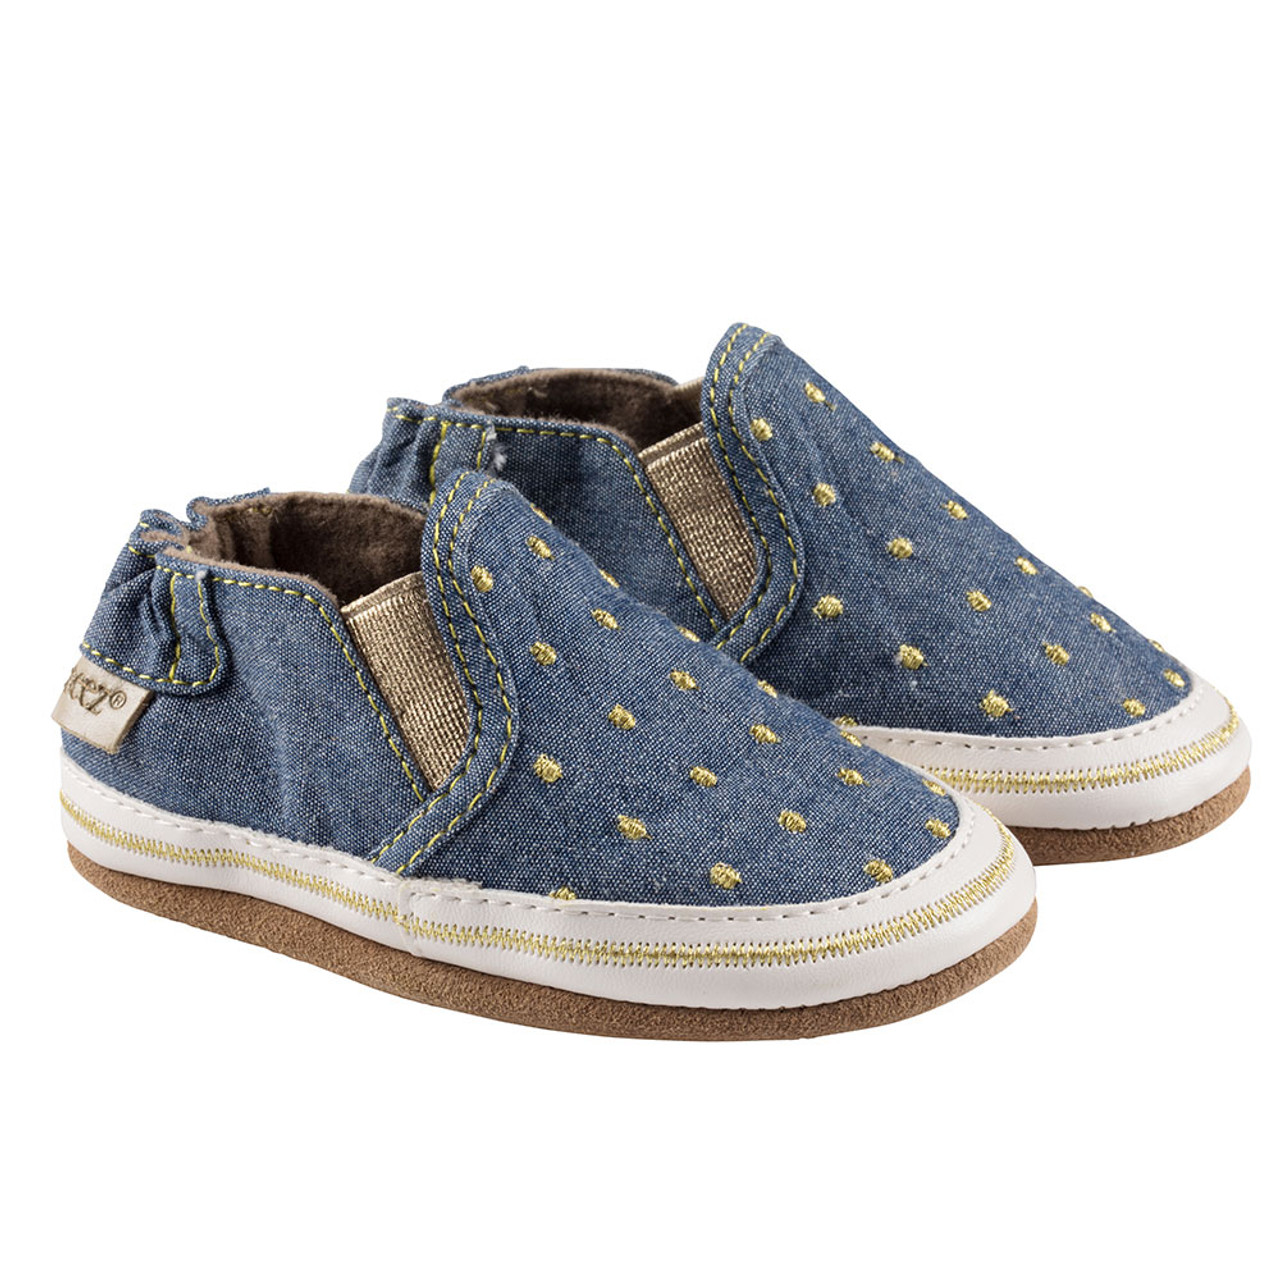 6322ad2f7cd Robeez Navy Isabella Soft Soles - Angle